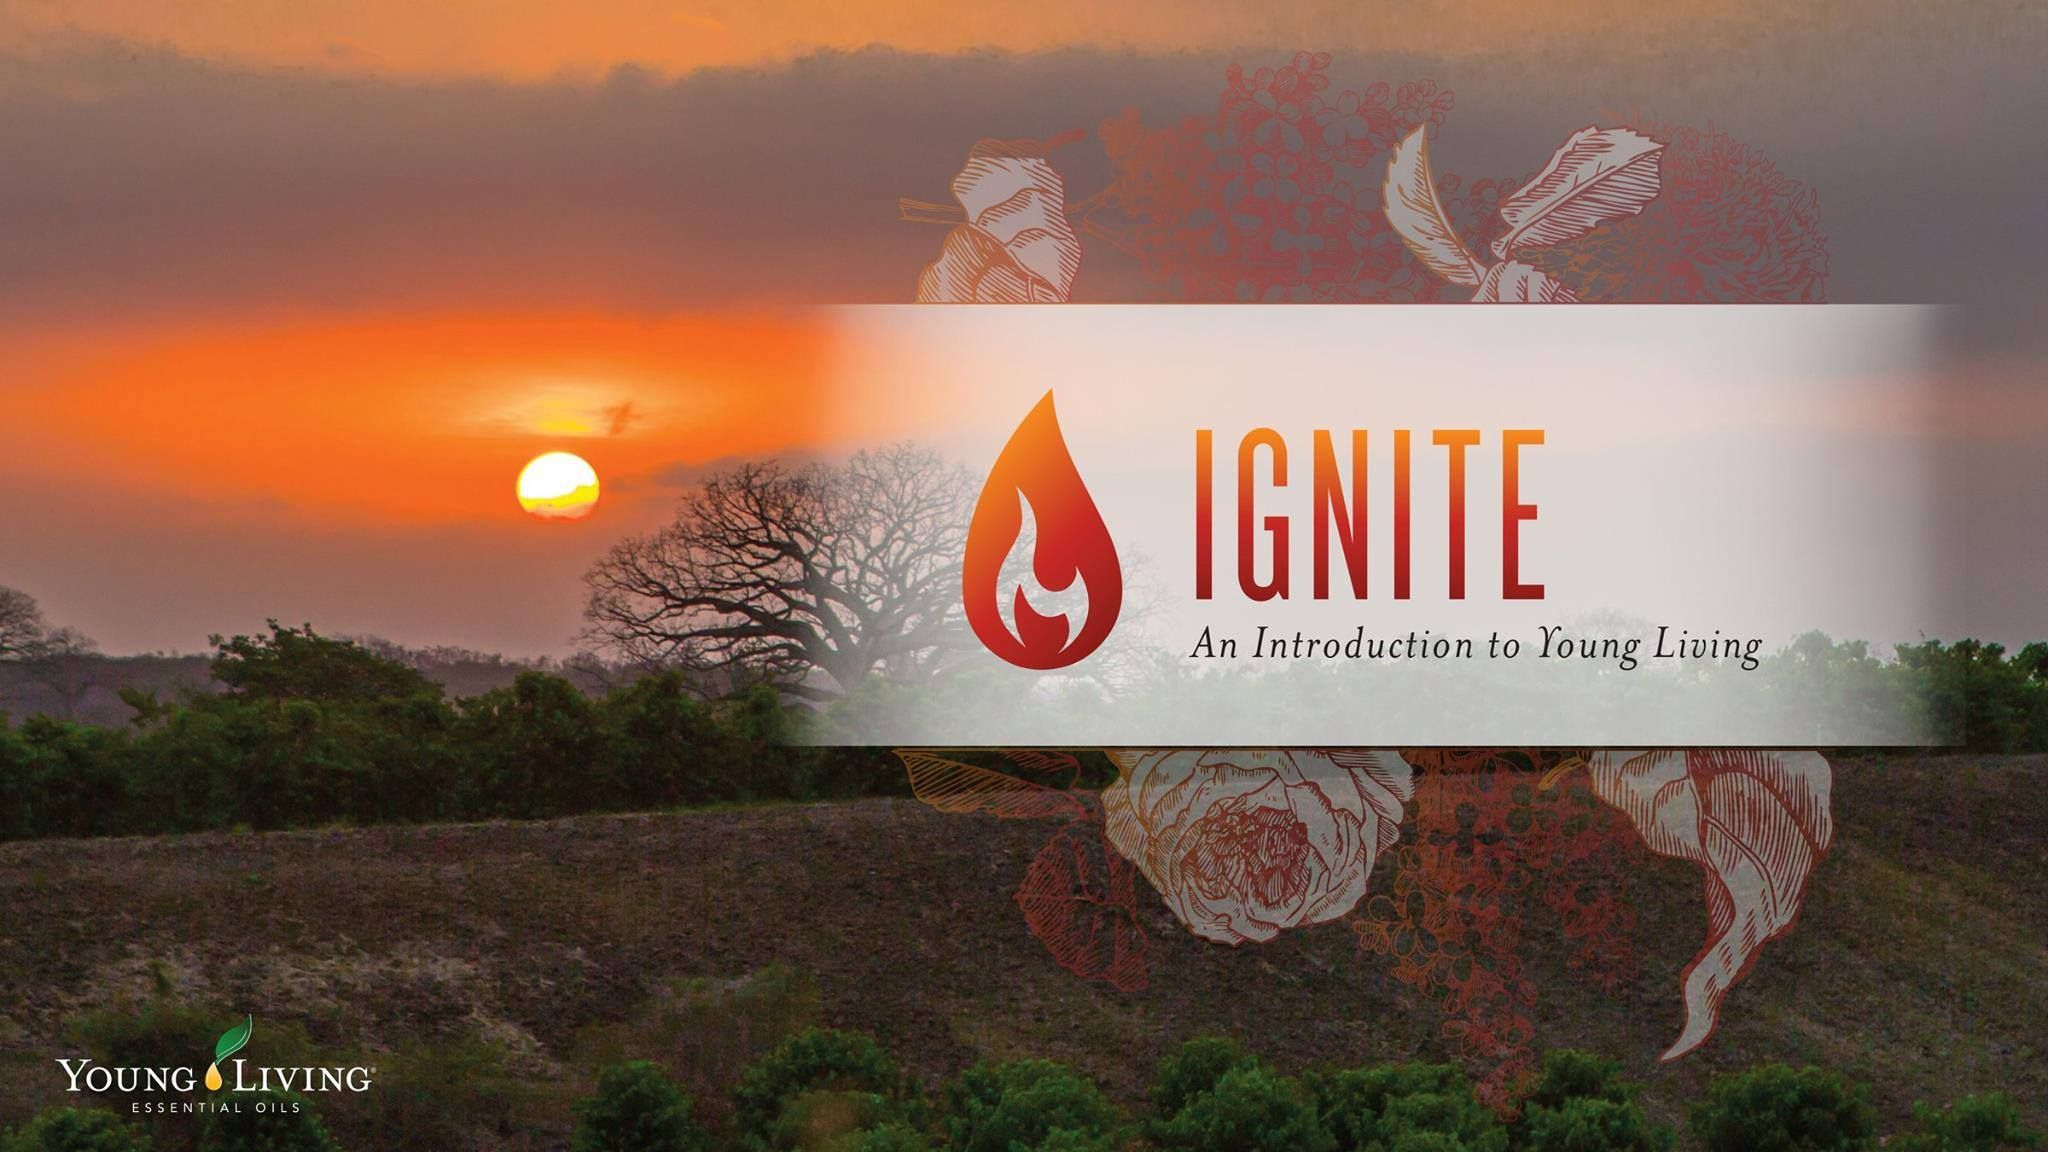 IGNITE & ACCELERATE EVENTS   REGISTER TODAY!  IGNITE your passion for essential oils as you join us for an Introduction to Young Living.   ACCELERATE your wellness, purpose, and abundance. Experience a more advanced look at essential oils and what they can offer your friends and family.  Don't miss out on these truly inspirational events. Follow the links below to register now  IGNITE  https://www.youngliving.com/en_AU/company/events/educational-events/Ignite_2015?v=y&rnd=1441768522106